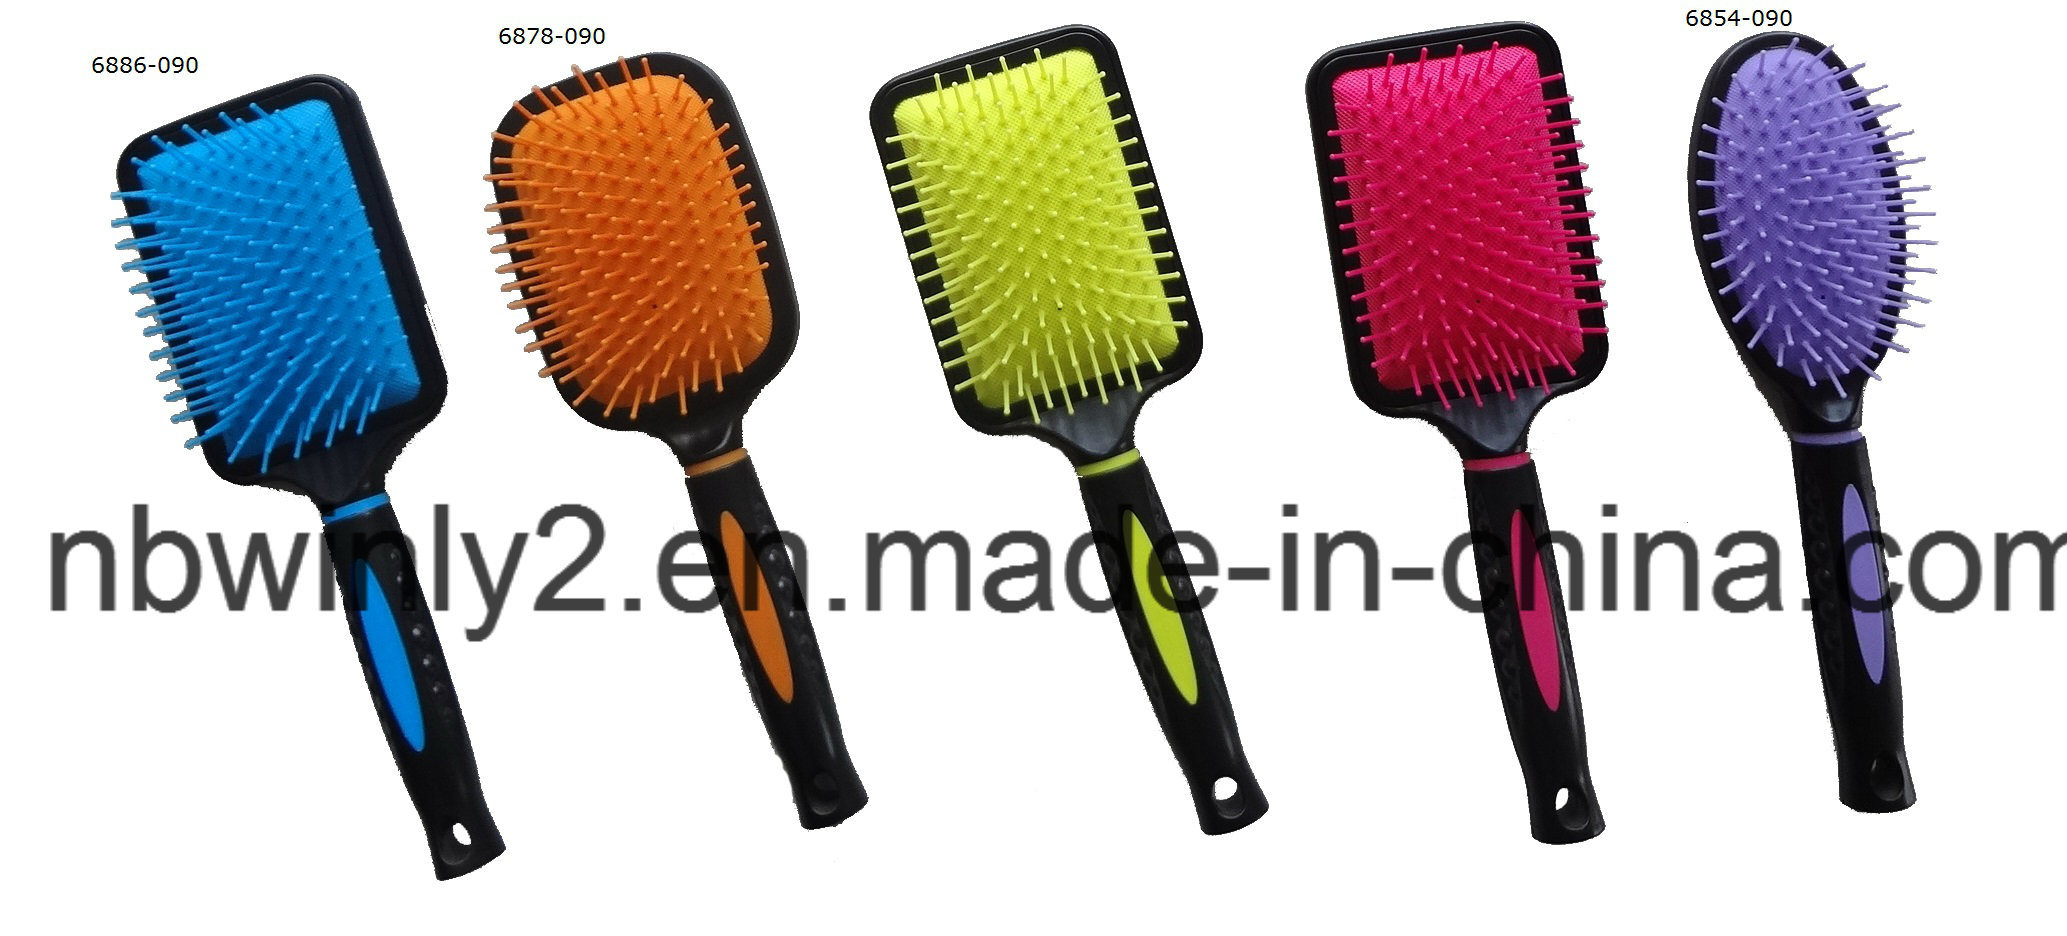 New Serious Hairbrush for Salon